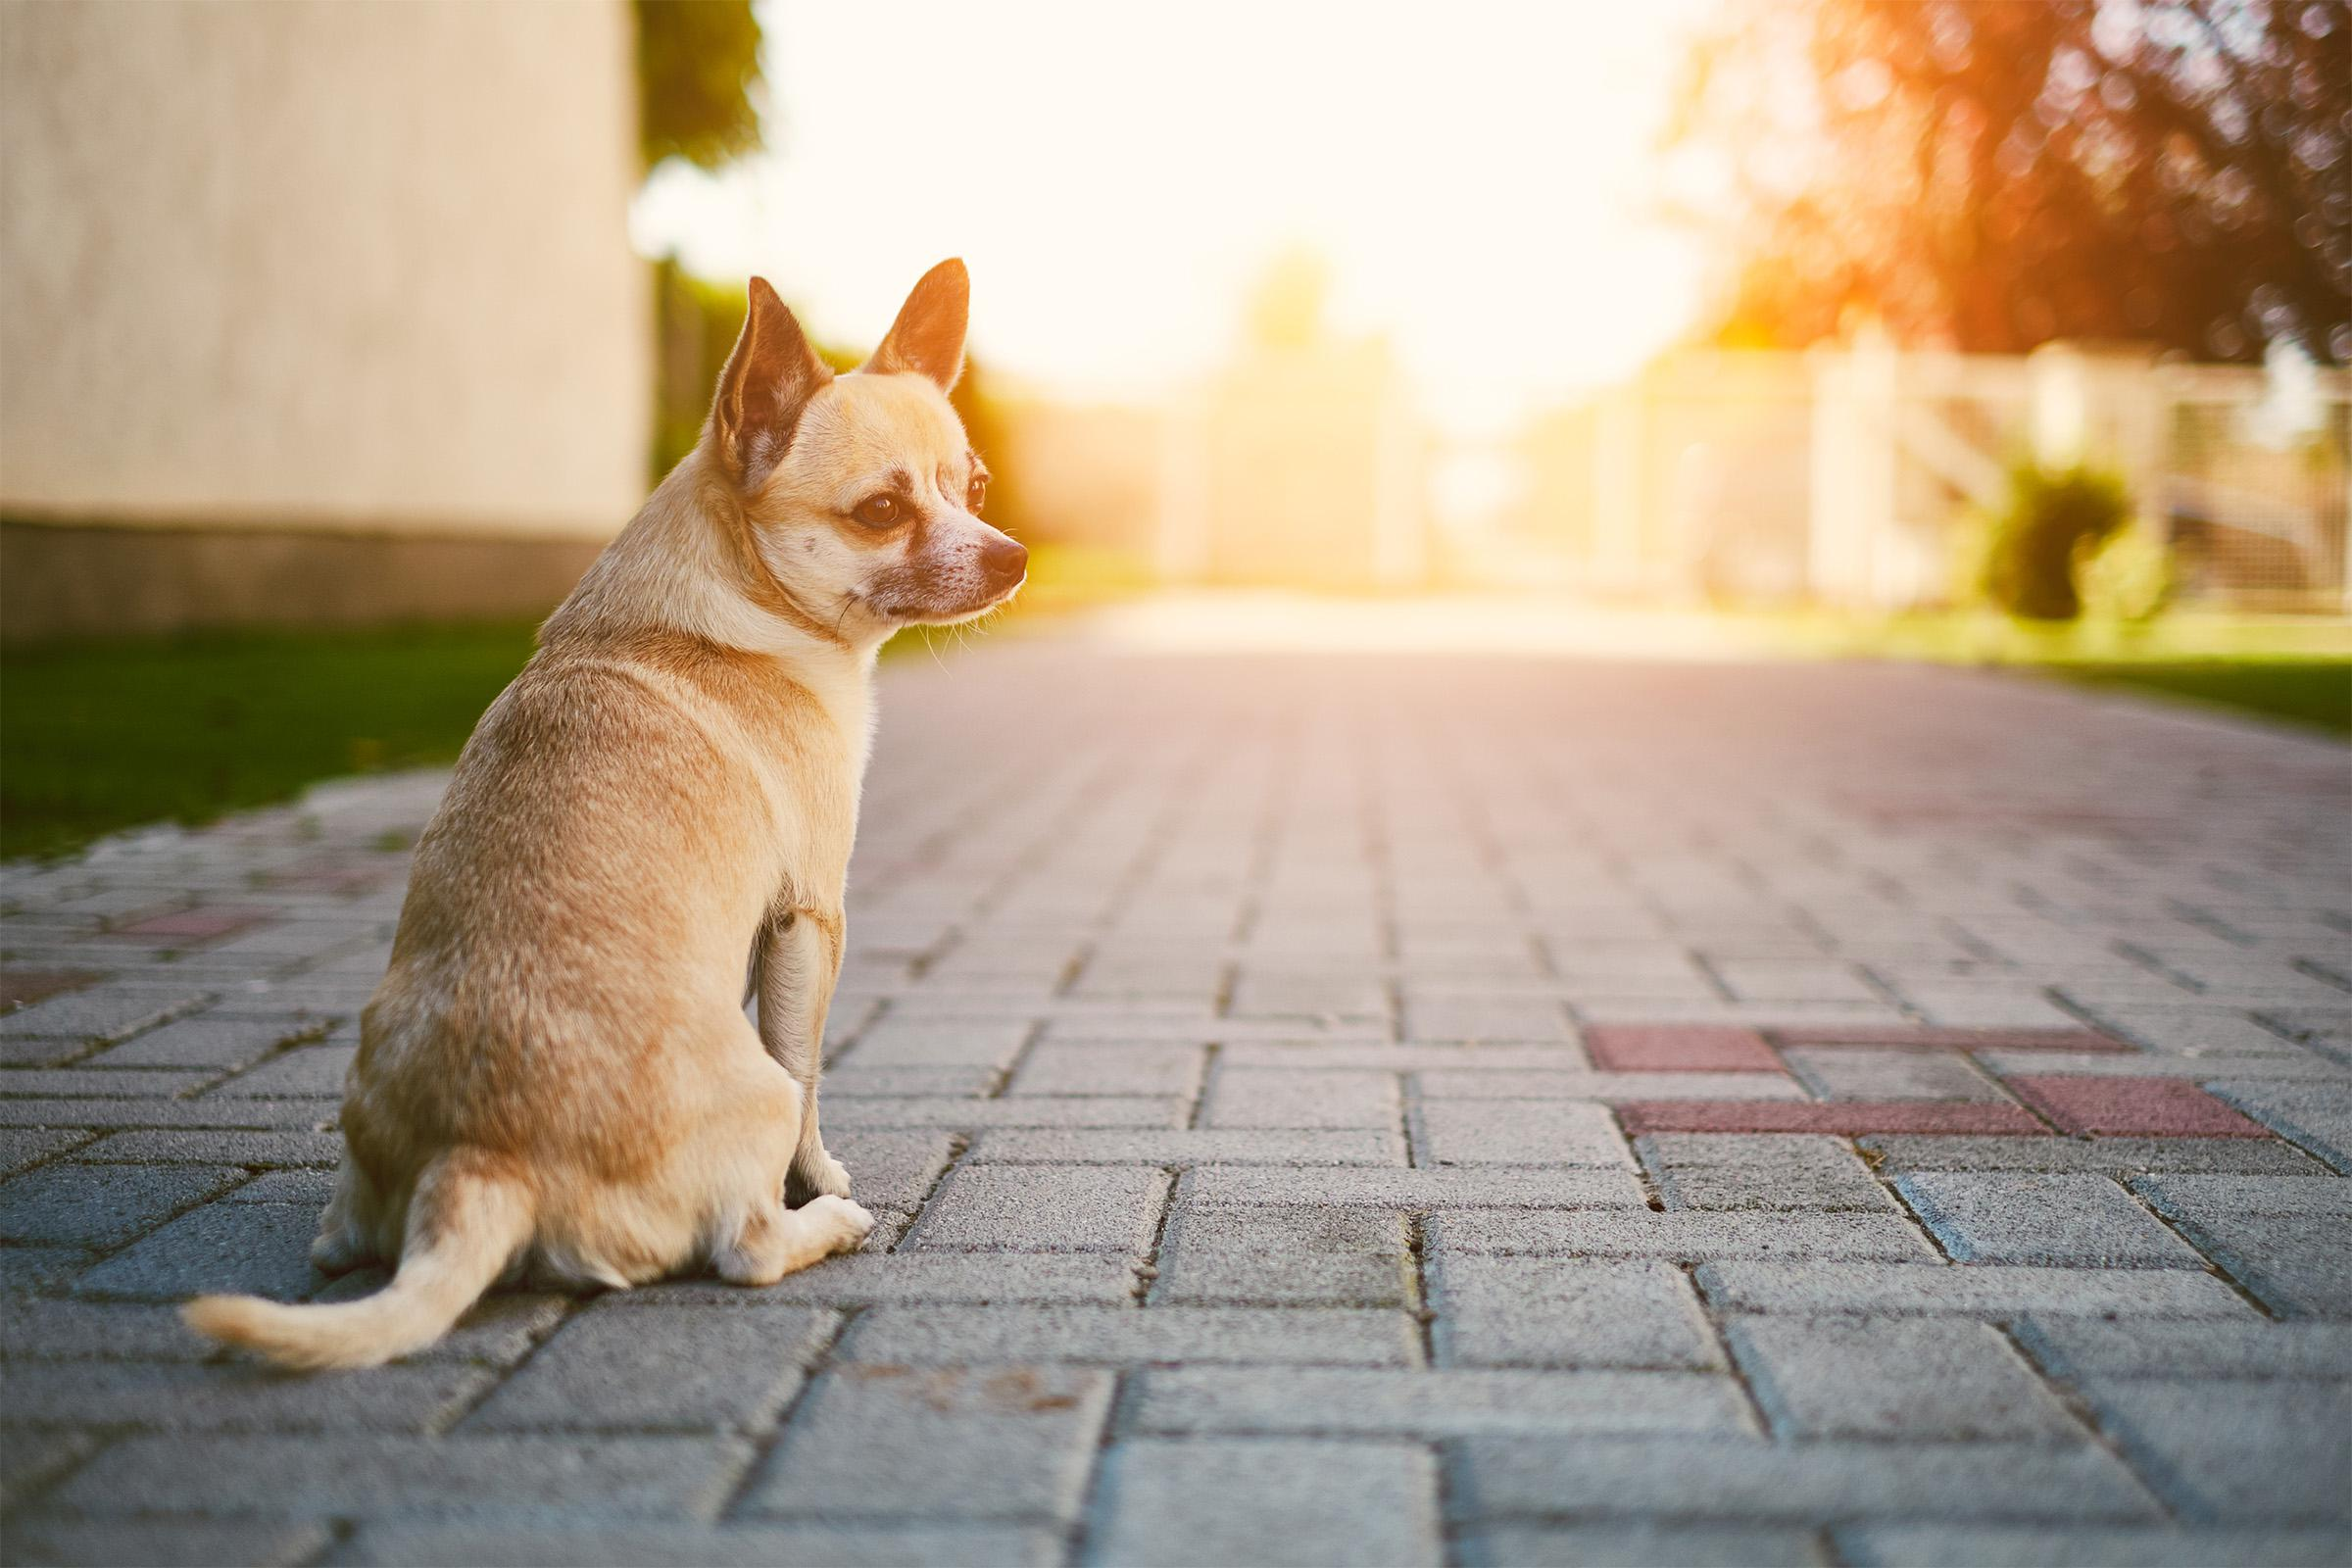 a dog sitting on the ground